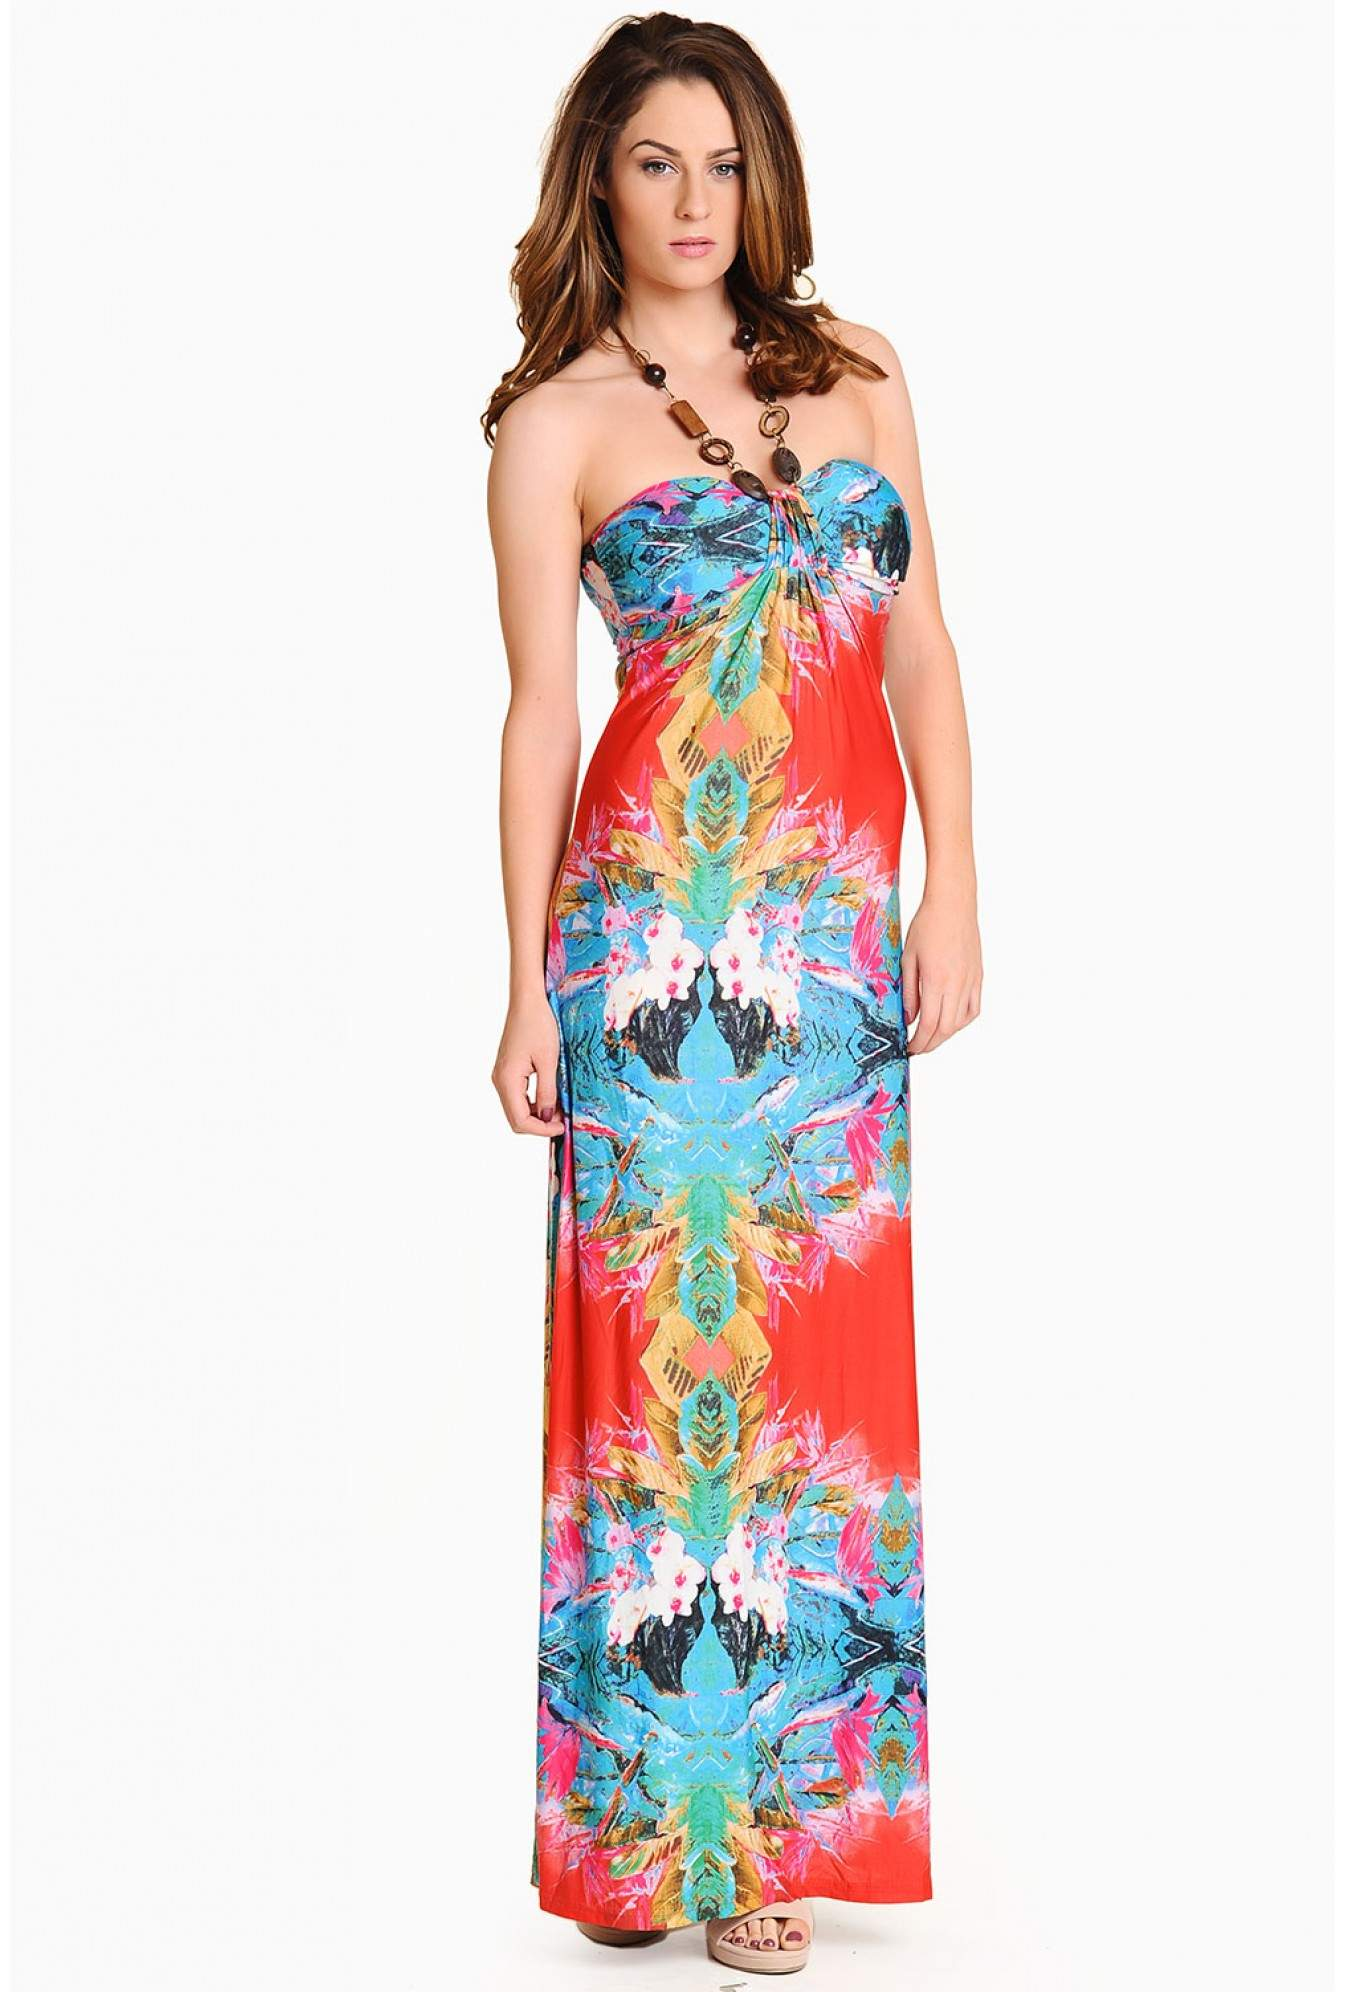 65b6673ac7e505 More Views. Amber Floral Halter Neck Maxi Dress in Multi Blue